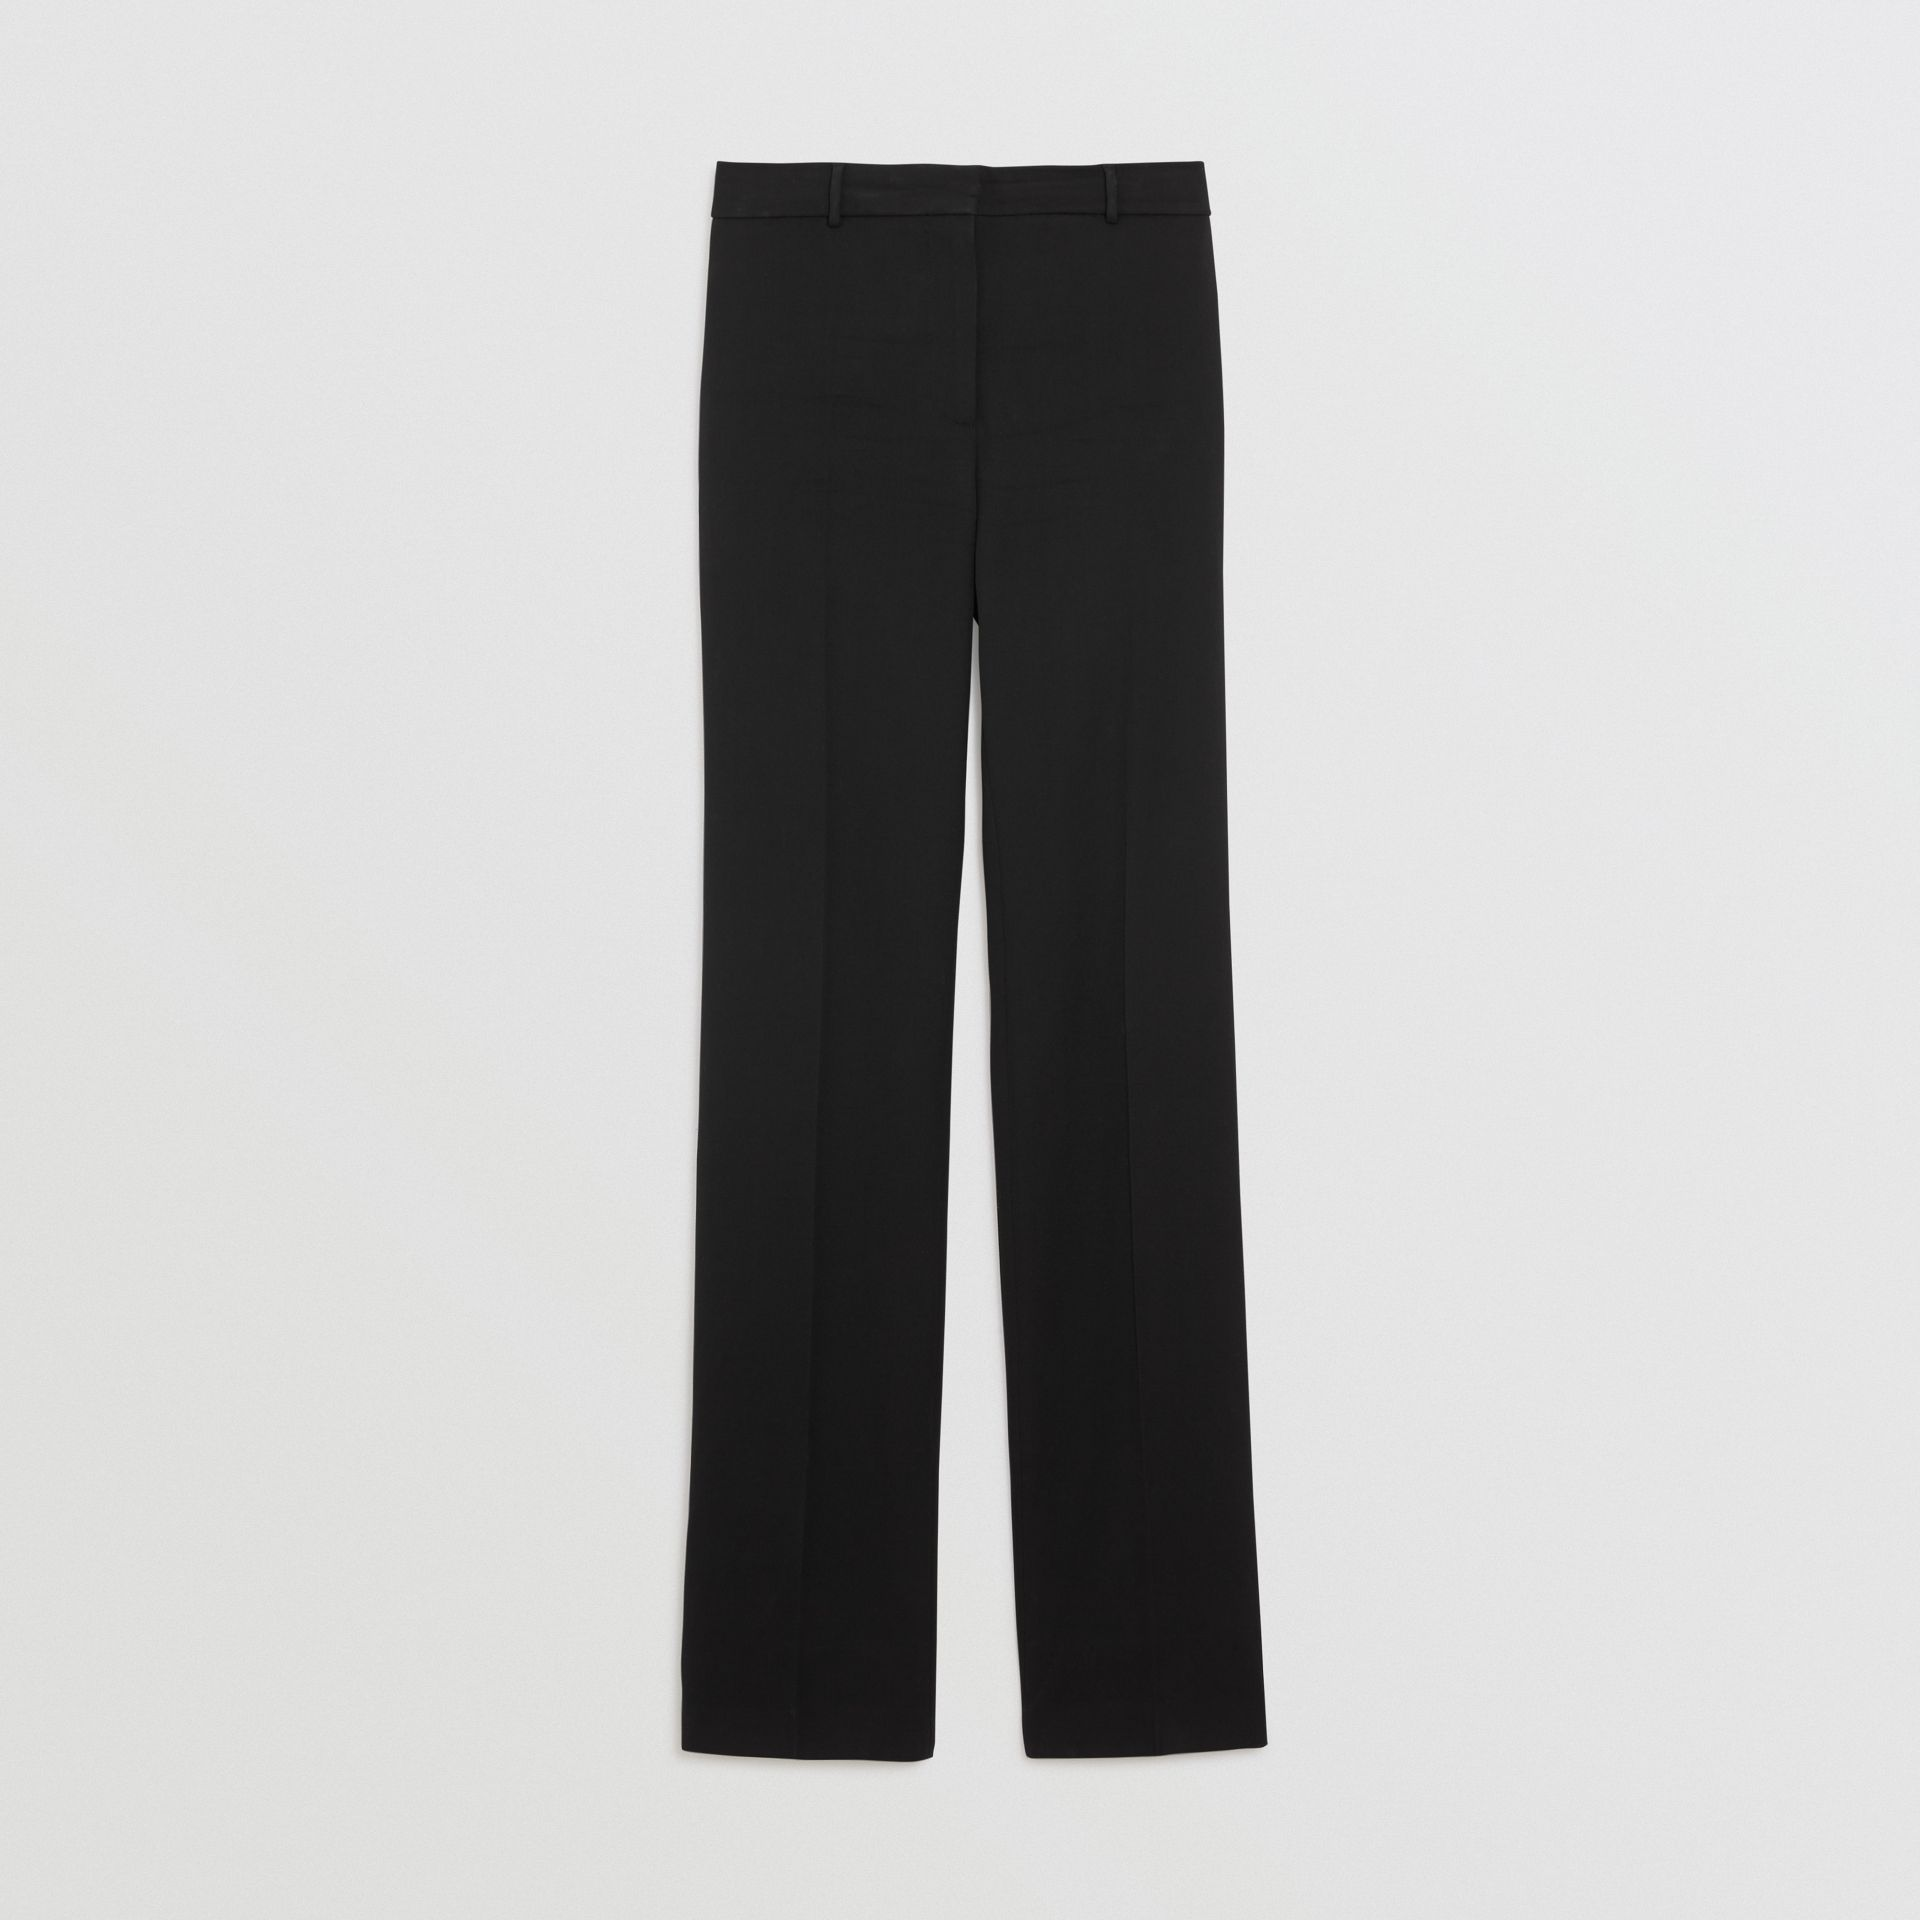 Straight Fit Stretch Wool Tailored Trousers in Black - Women | Burberry - gallery image 3